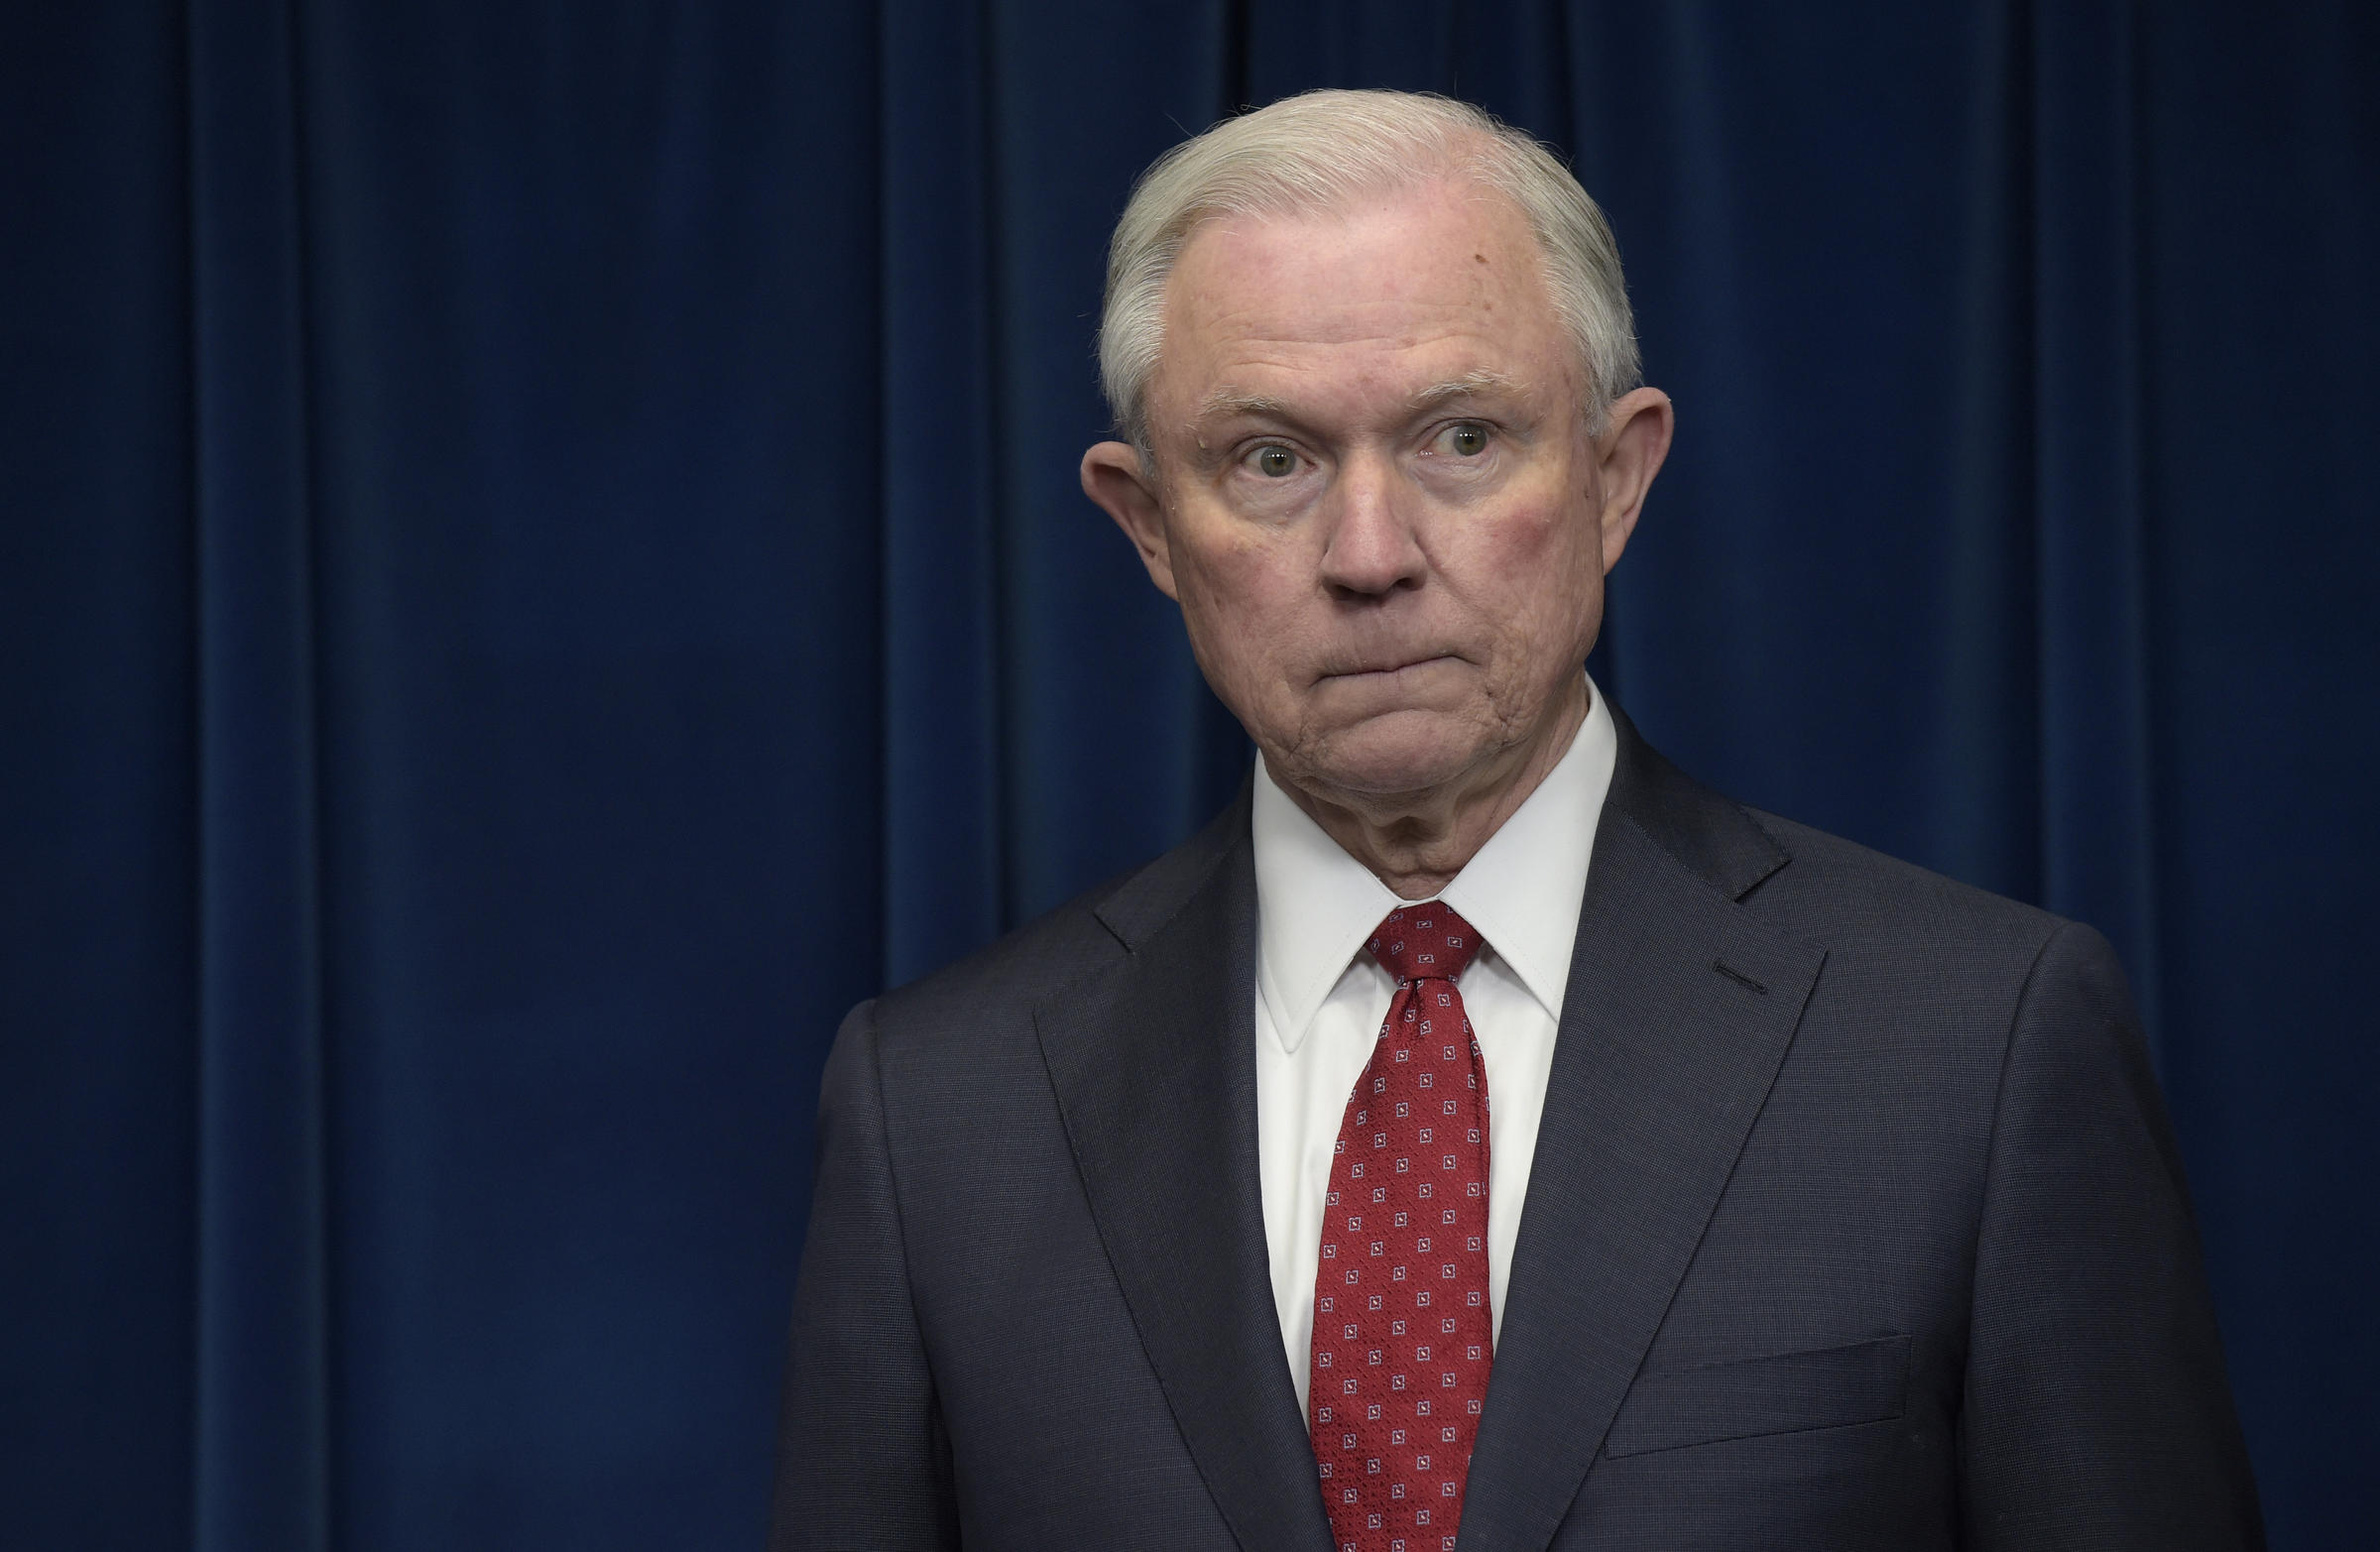 Sessions: Suggestions of collusion with Russian Federation  'appalling and destestable lie'